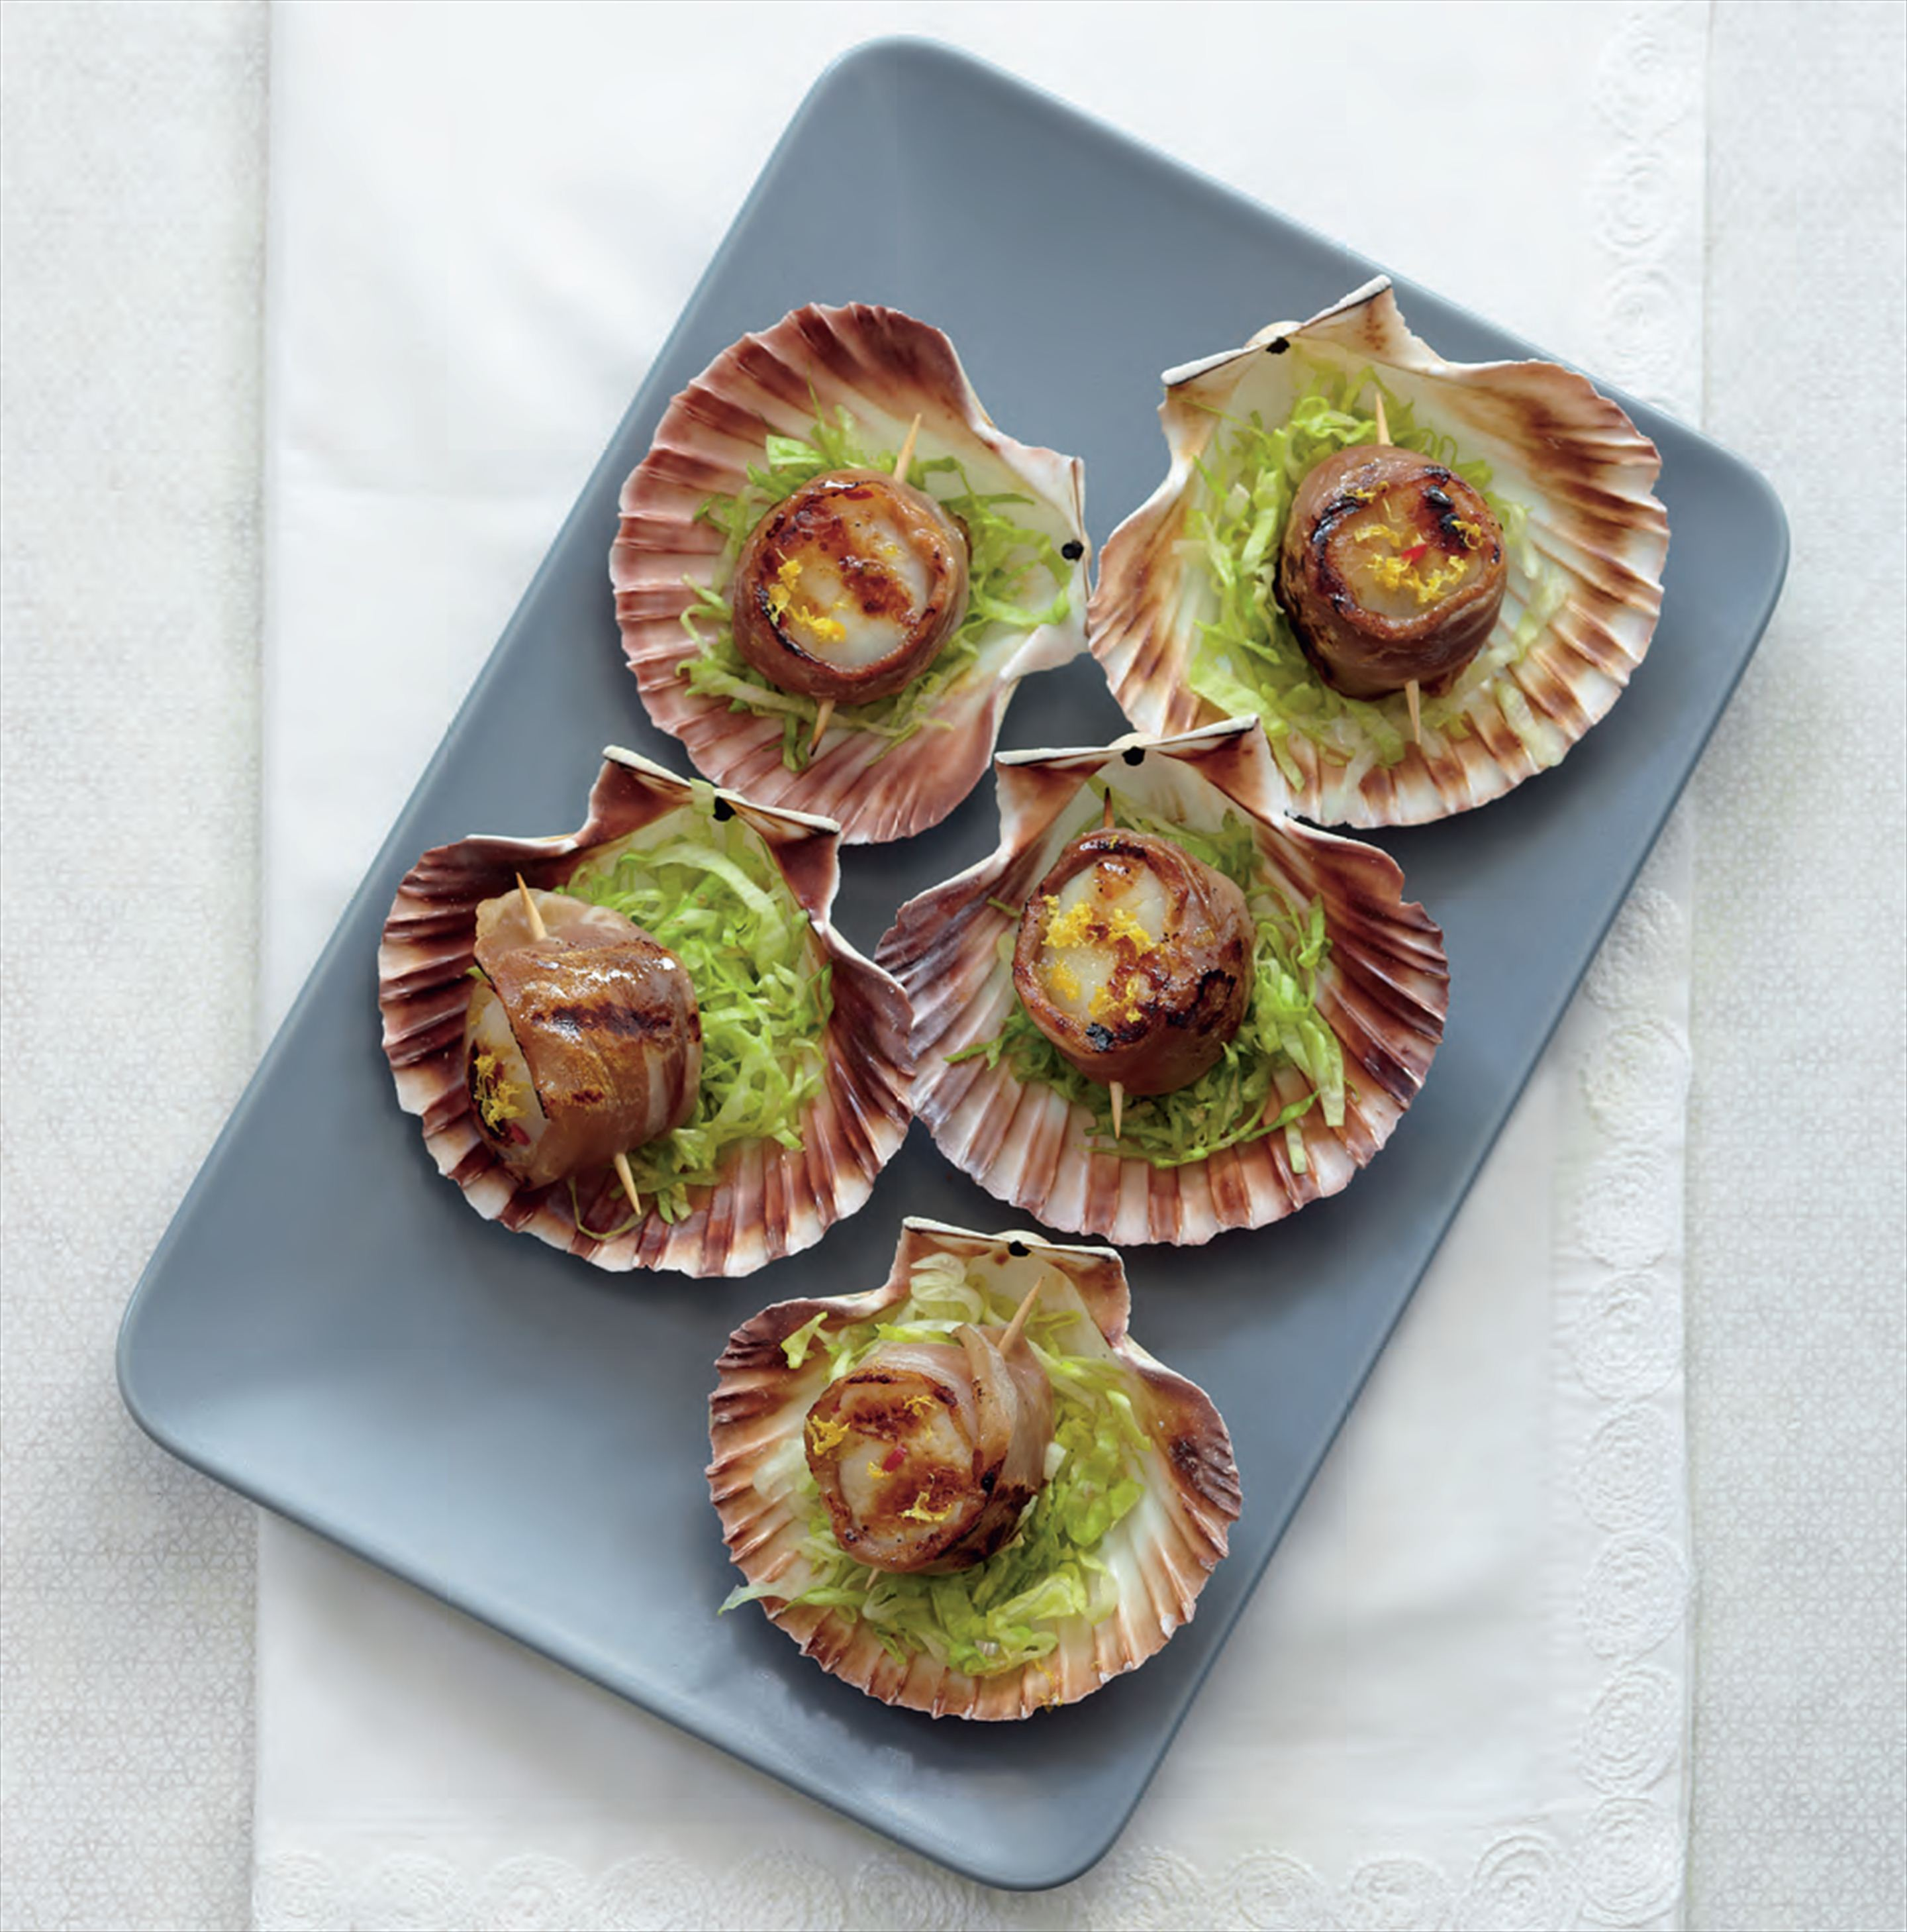 Char-grilled scallops wrapped in prosciutto